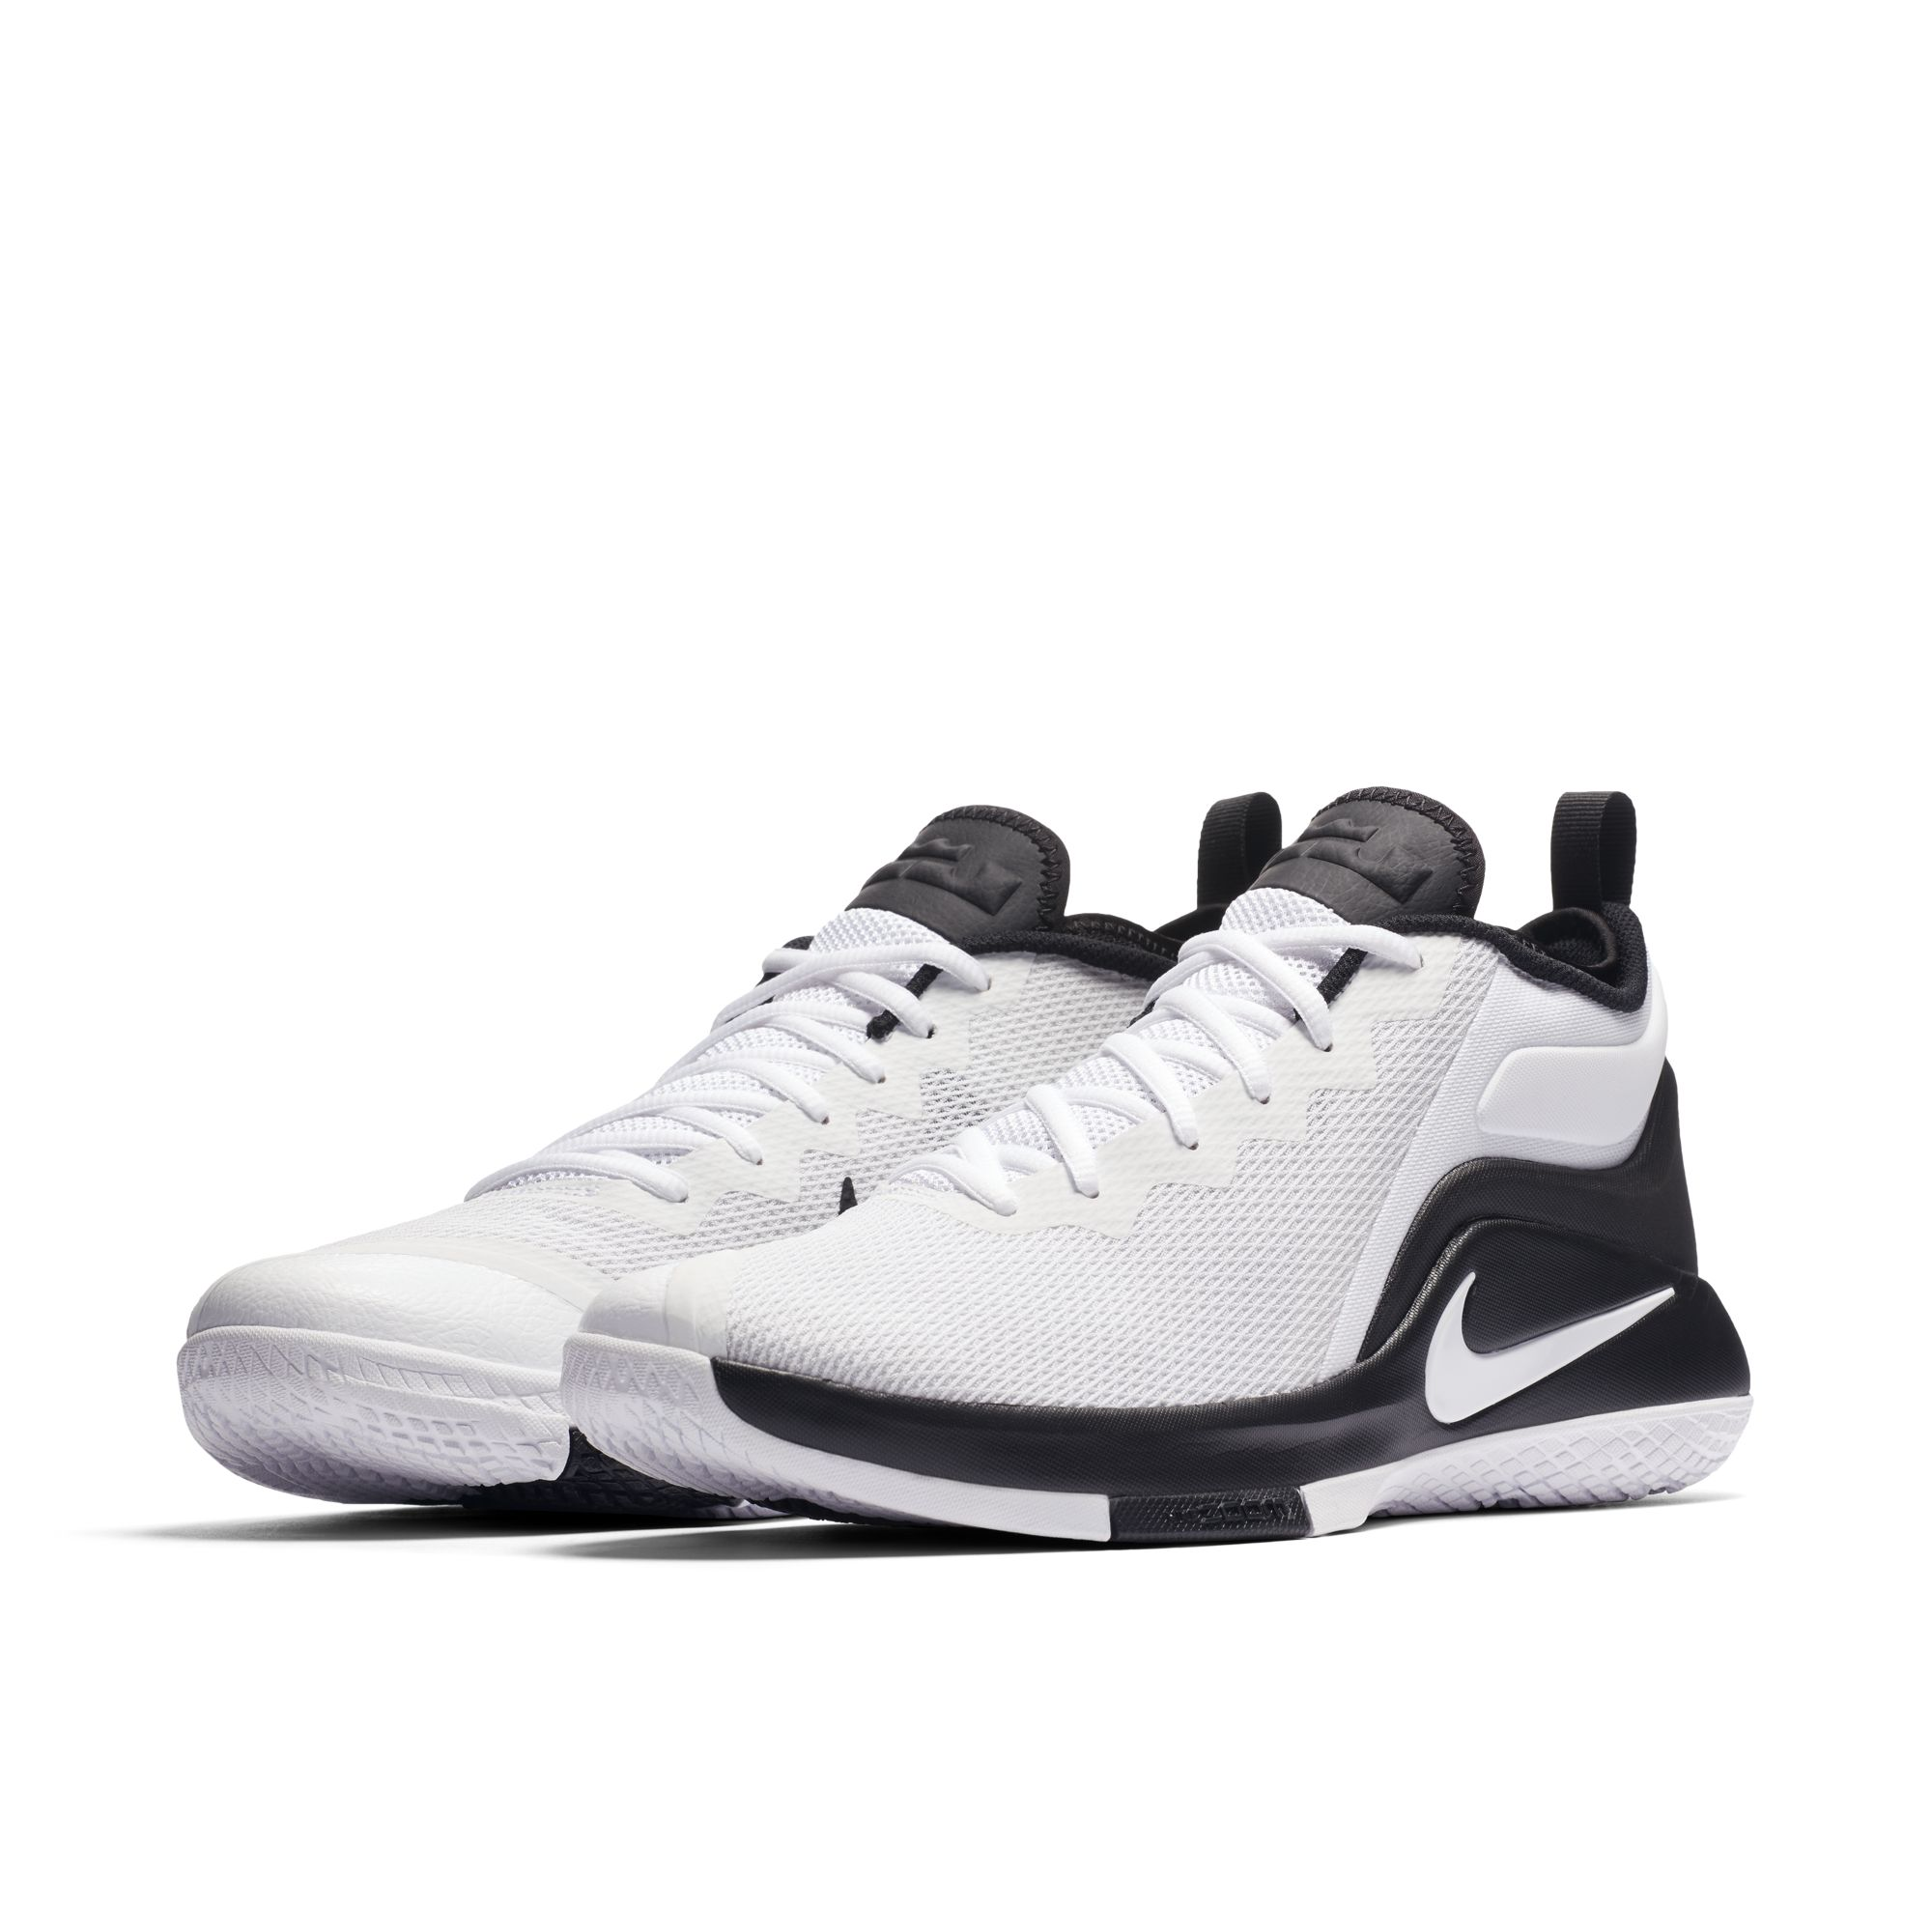 official photos e27c0 3551d nike lebron witness 2 1